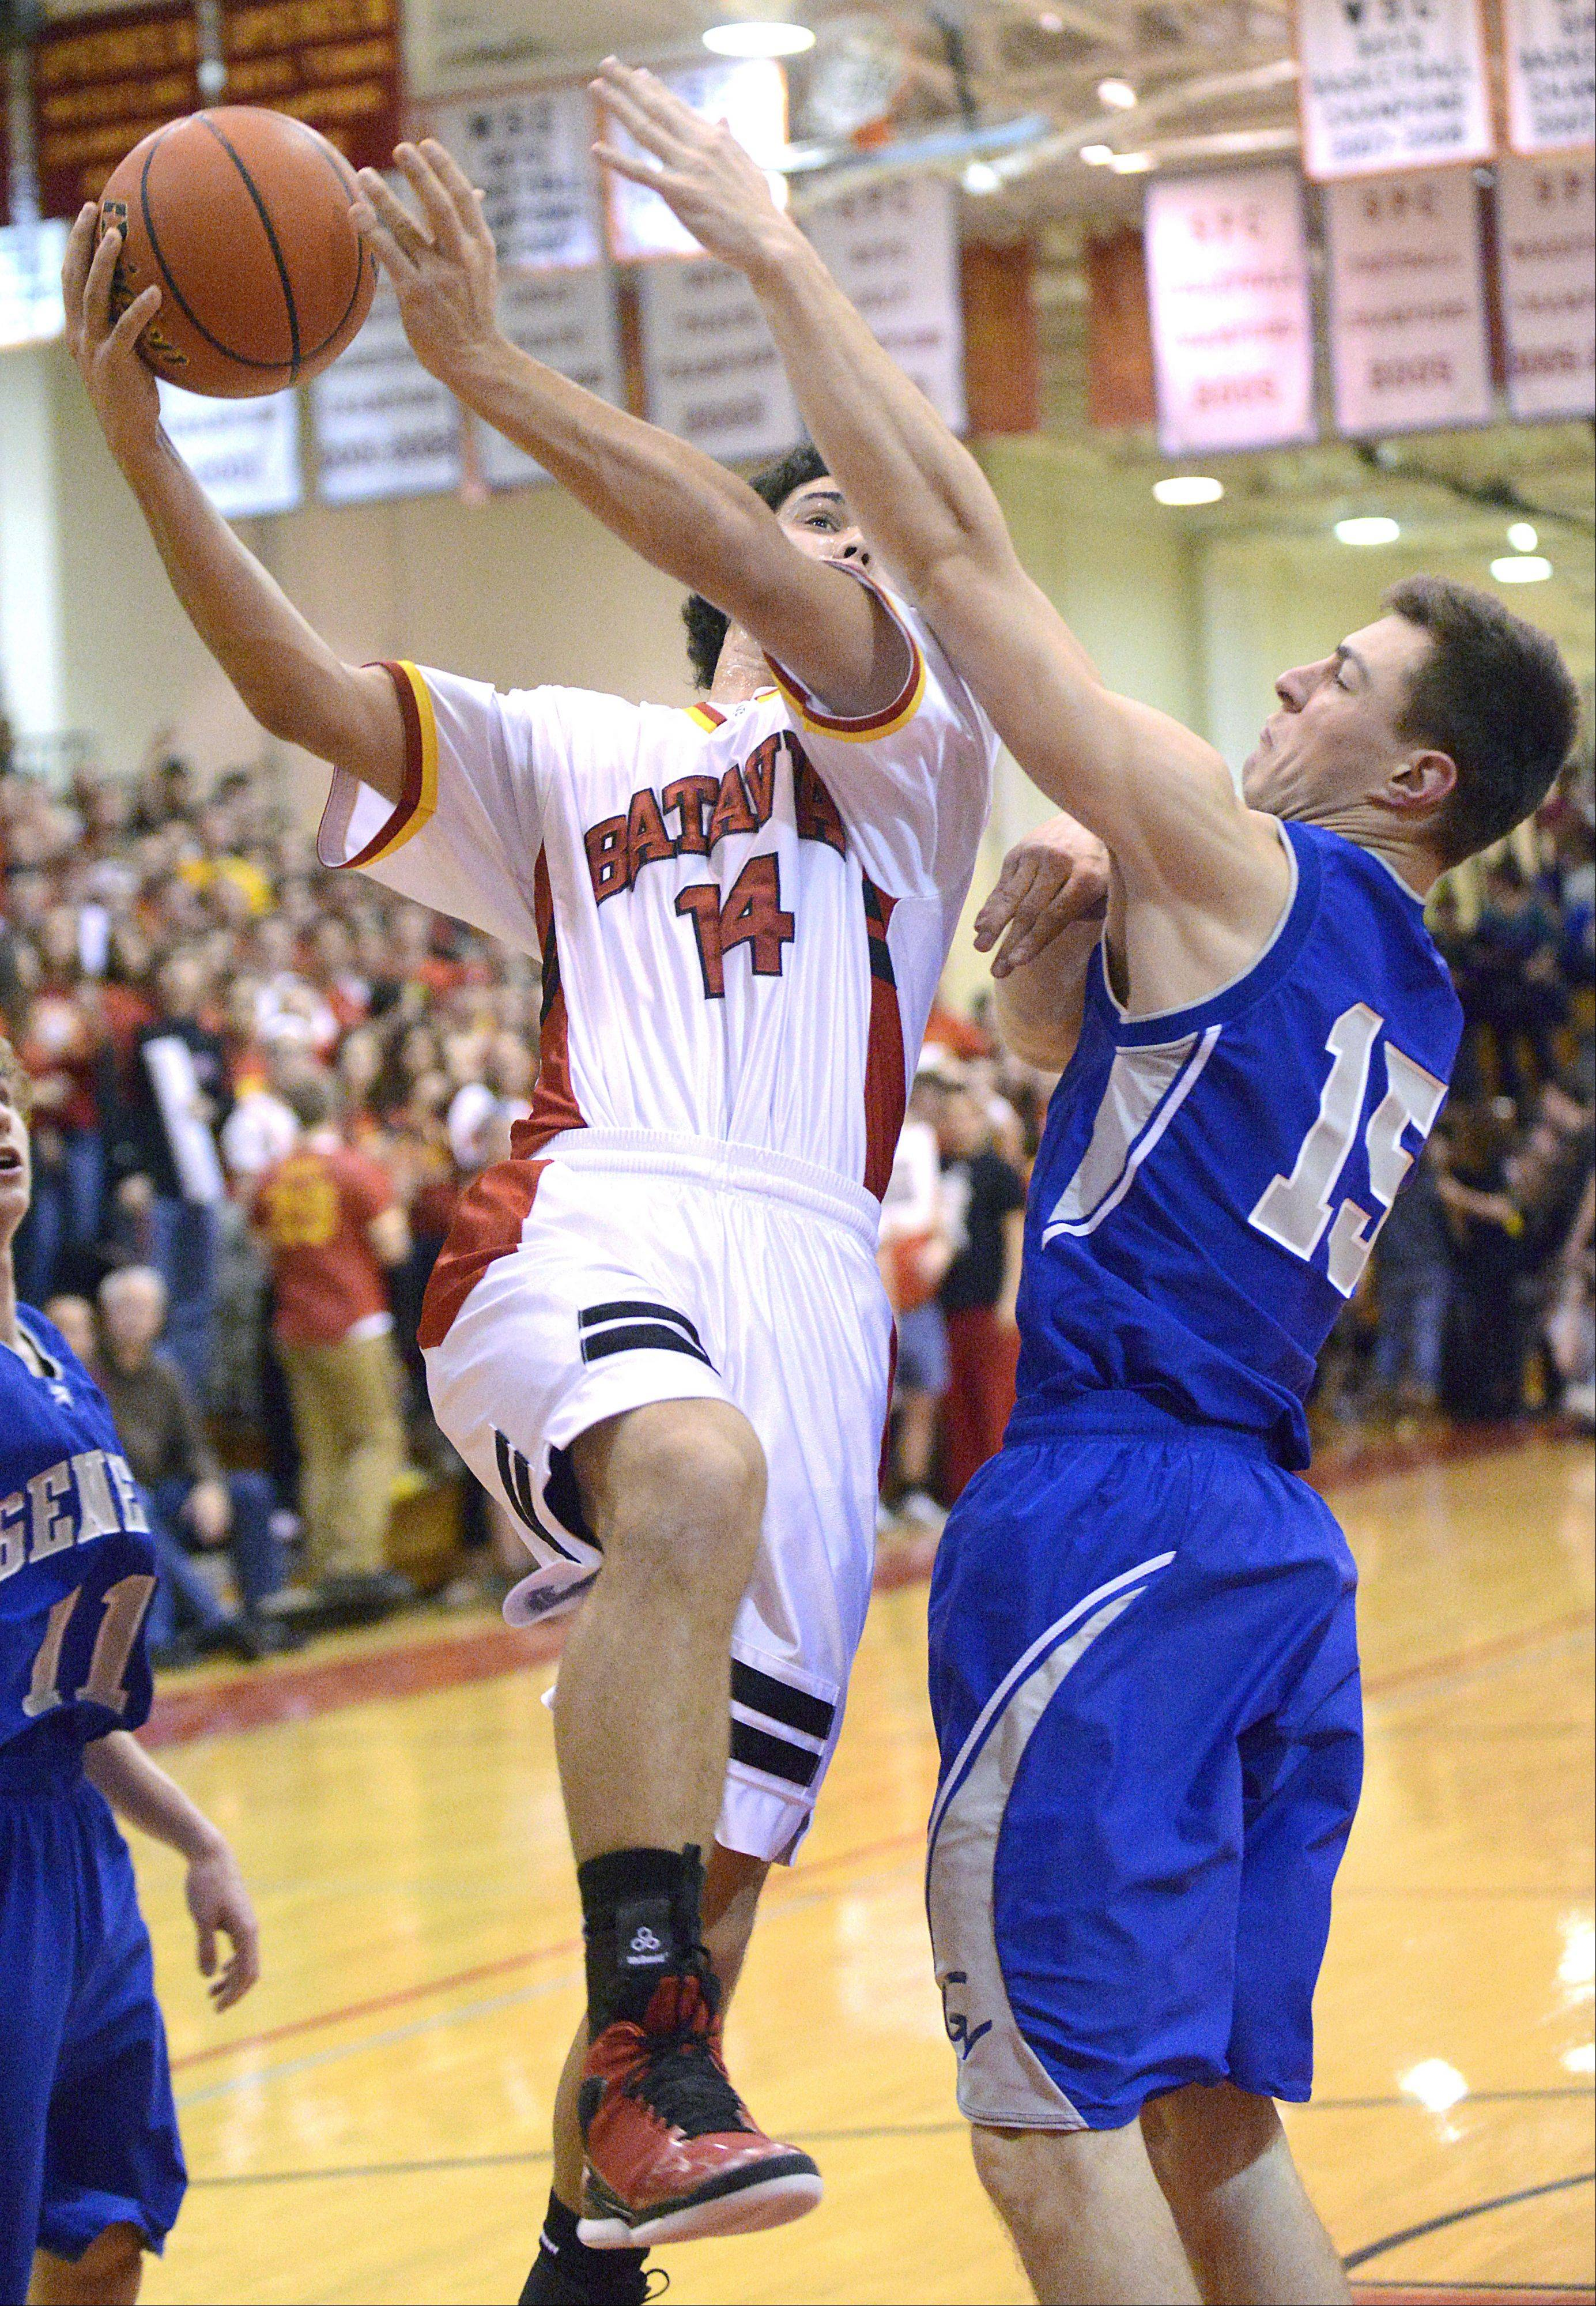 Geneva's Kyle Brown attempts to block a shot by Batavia's Micah Coffey in the second quarter on Friday, January 11.